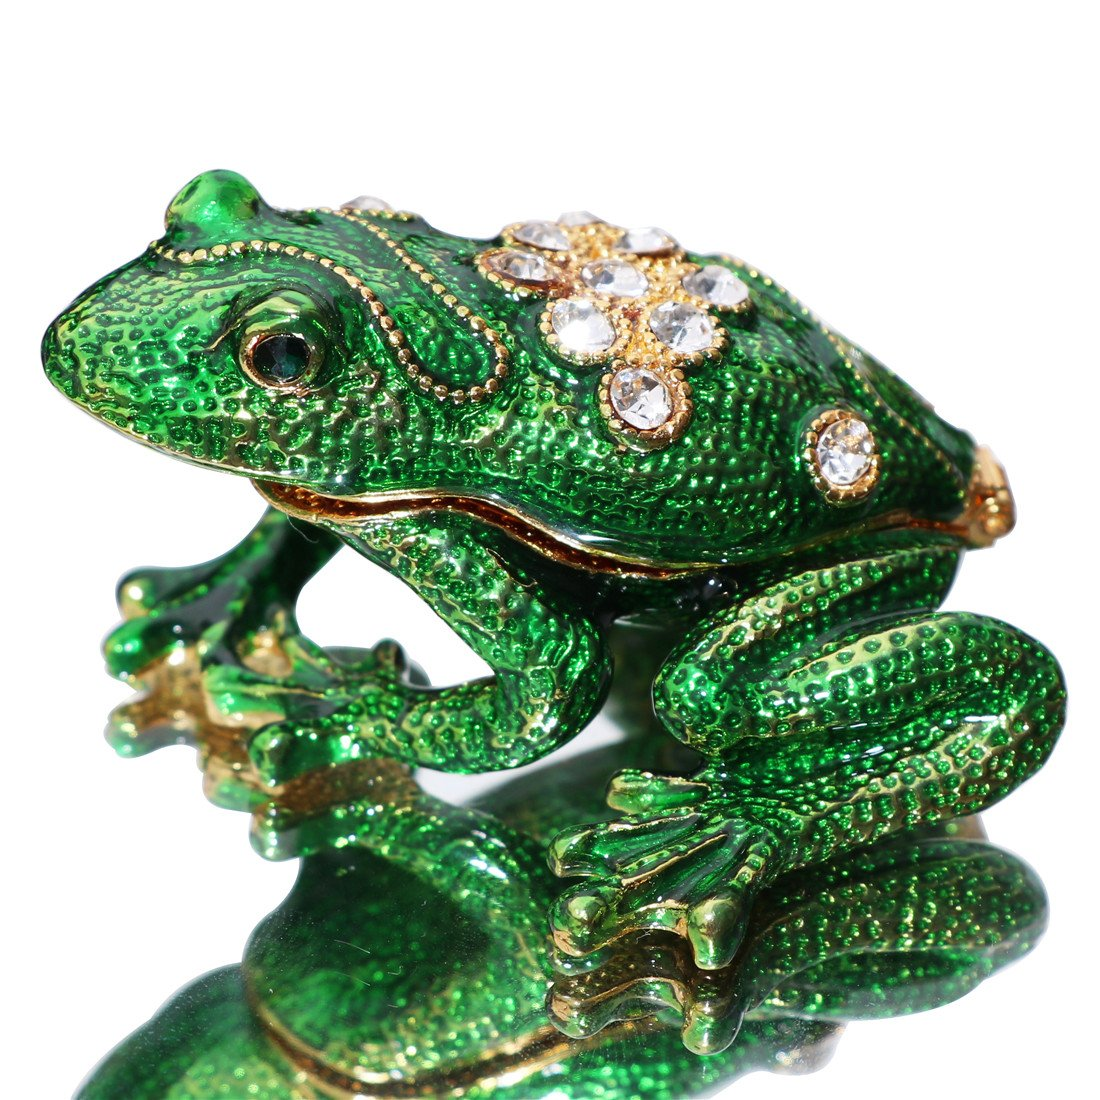 ltd Waltz/&F Back drill frog Trinket Box Hinged Hand-painted Animal Figurine Collectible Ring Holder Dongguan city guchu trading co